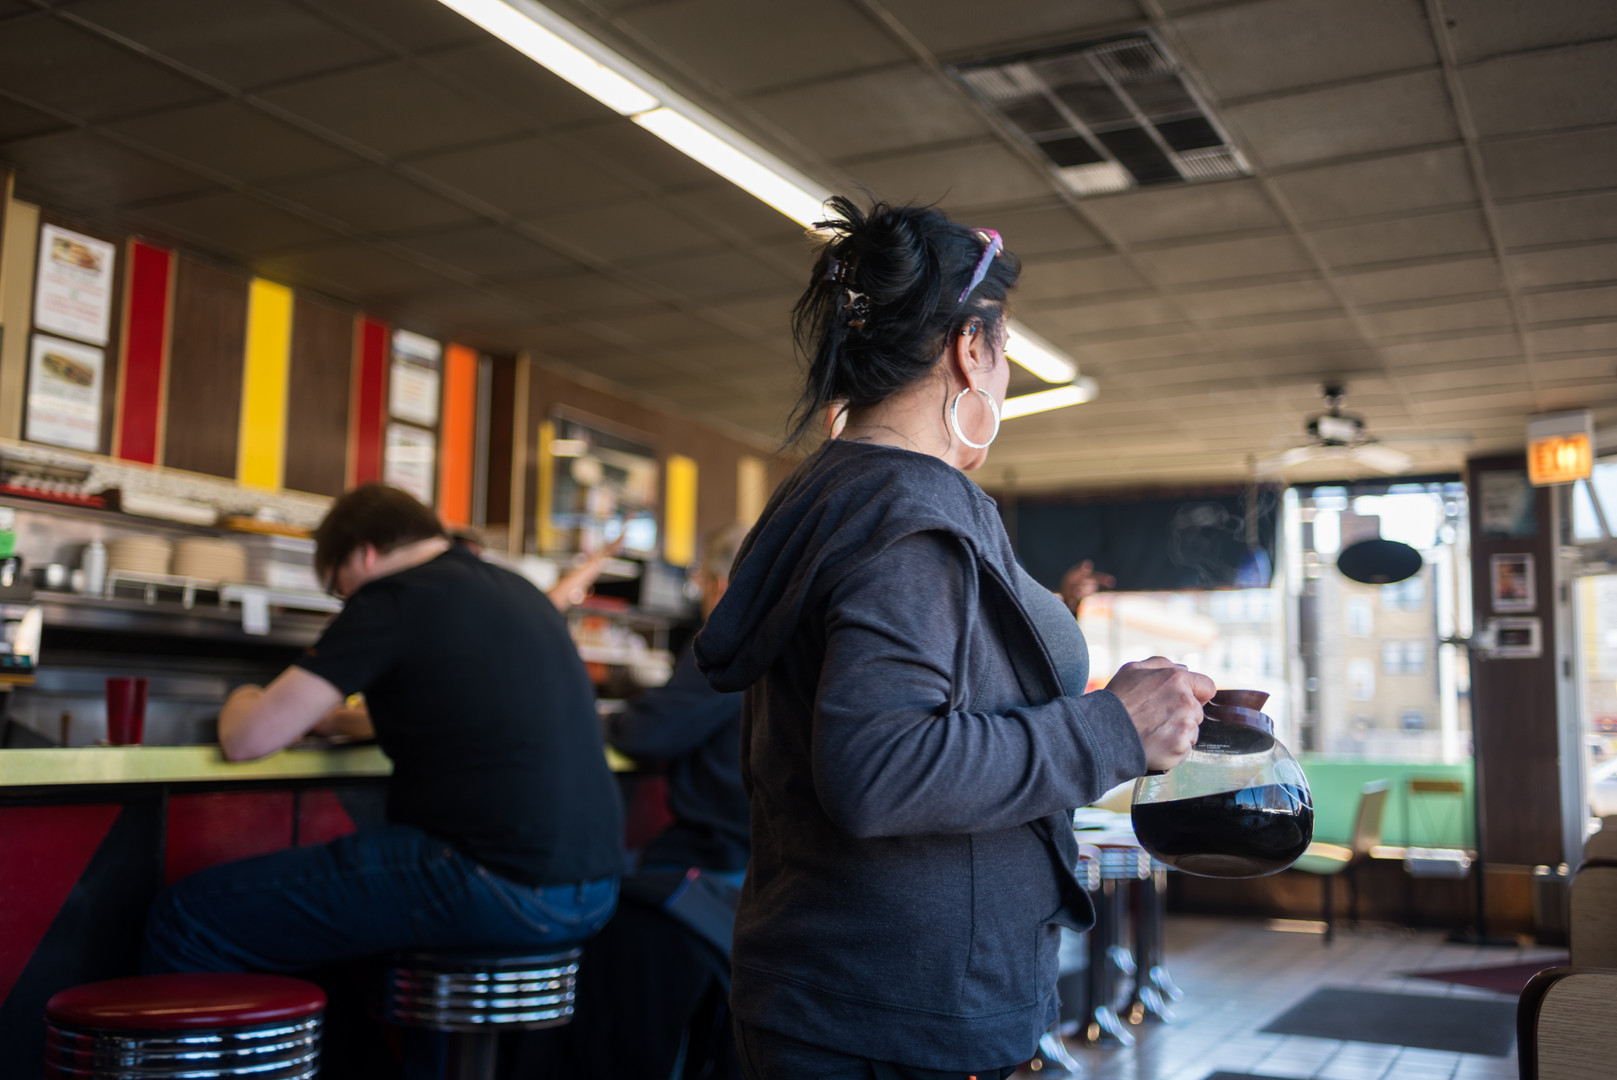 """12:50 p.m. Vickie Lynn Curtis, an employee at Jeri's for 18 years, serves coffee to the afternoon lunch crowd. """"Coffee or anything?"""" is a common question asked as customers first enter the restaurant."""